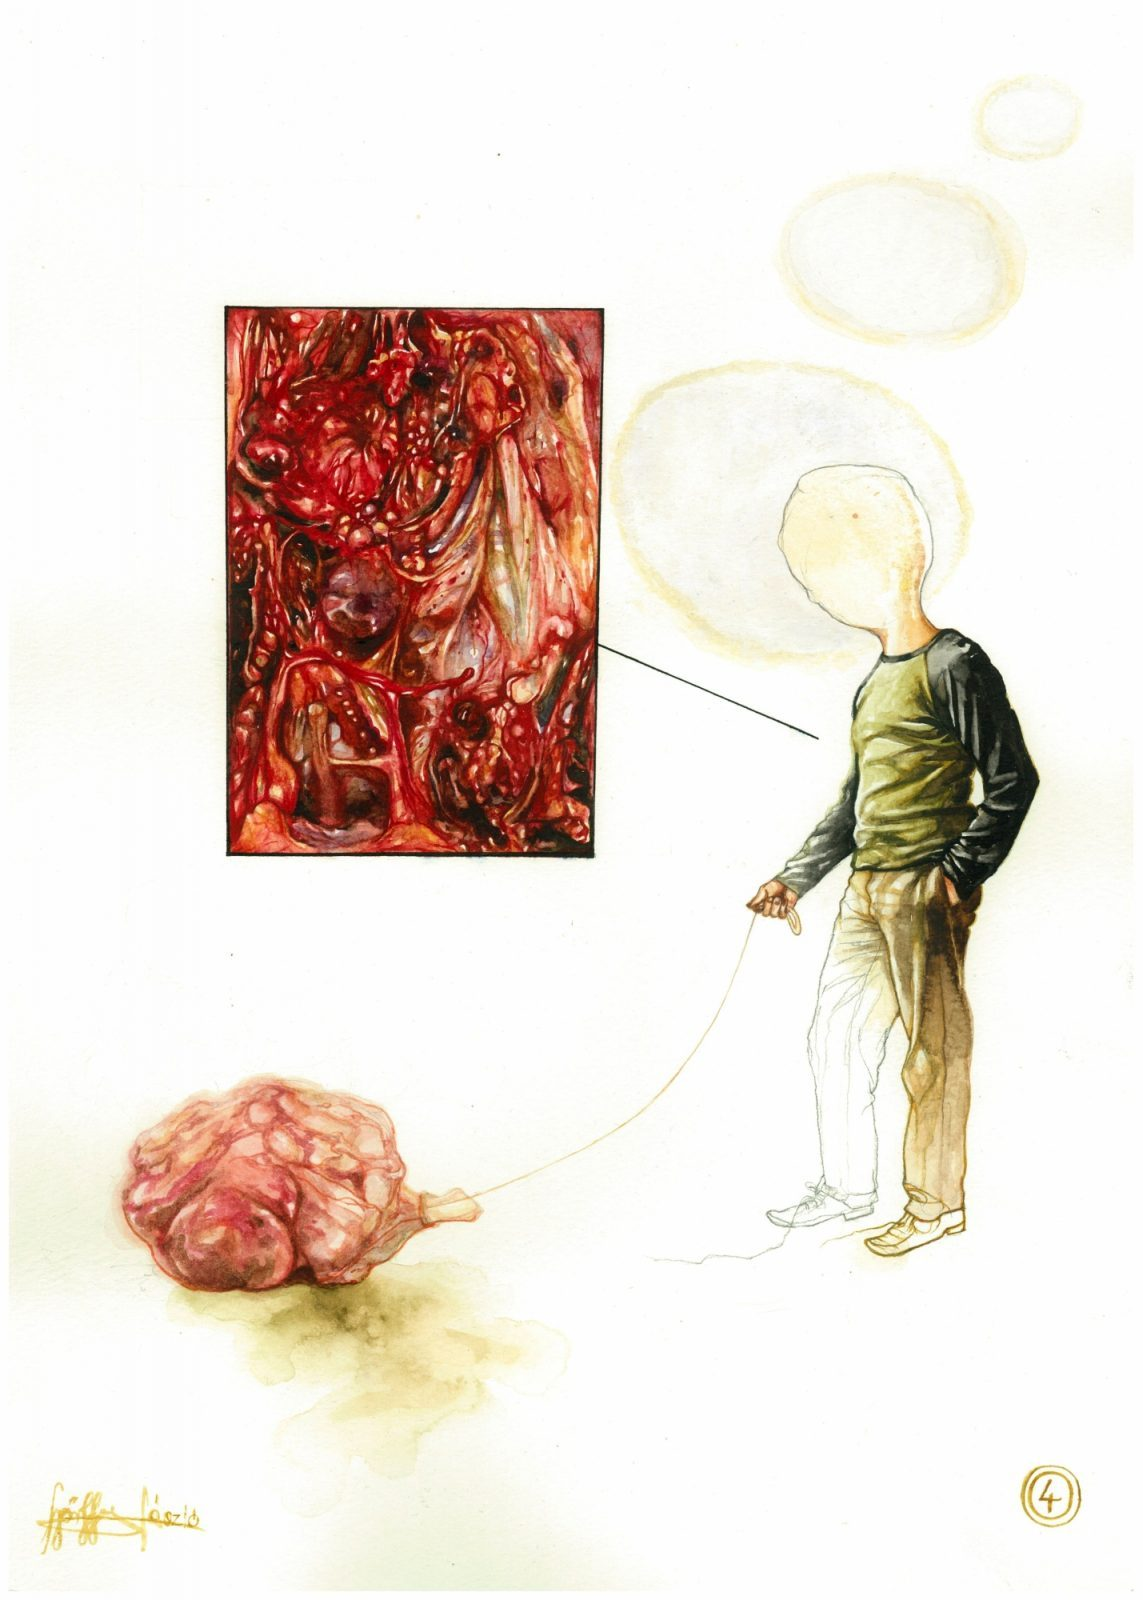 László Győrffy: 12 Ideas For Self-Destruction – Organism in Fucking Trouble Walking a Meat-Bundle